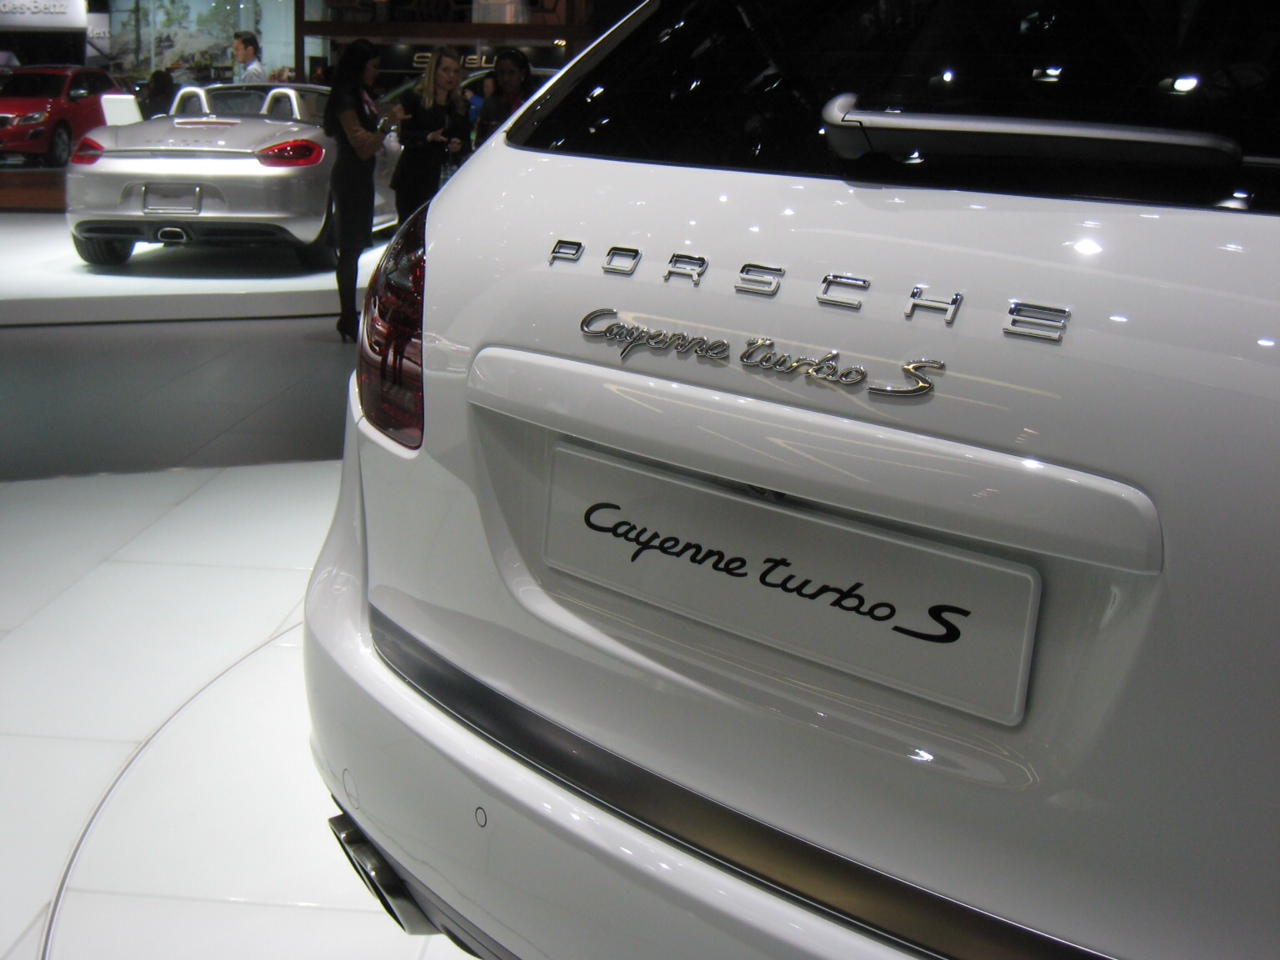 Pictures Details and Pricing for the 2014 Porsche Cayenne Turbo S